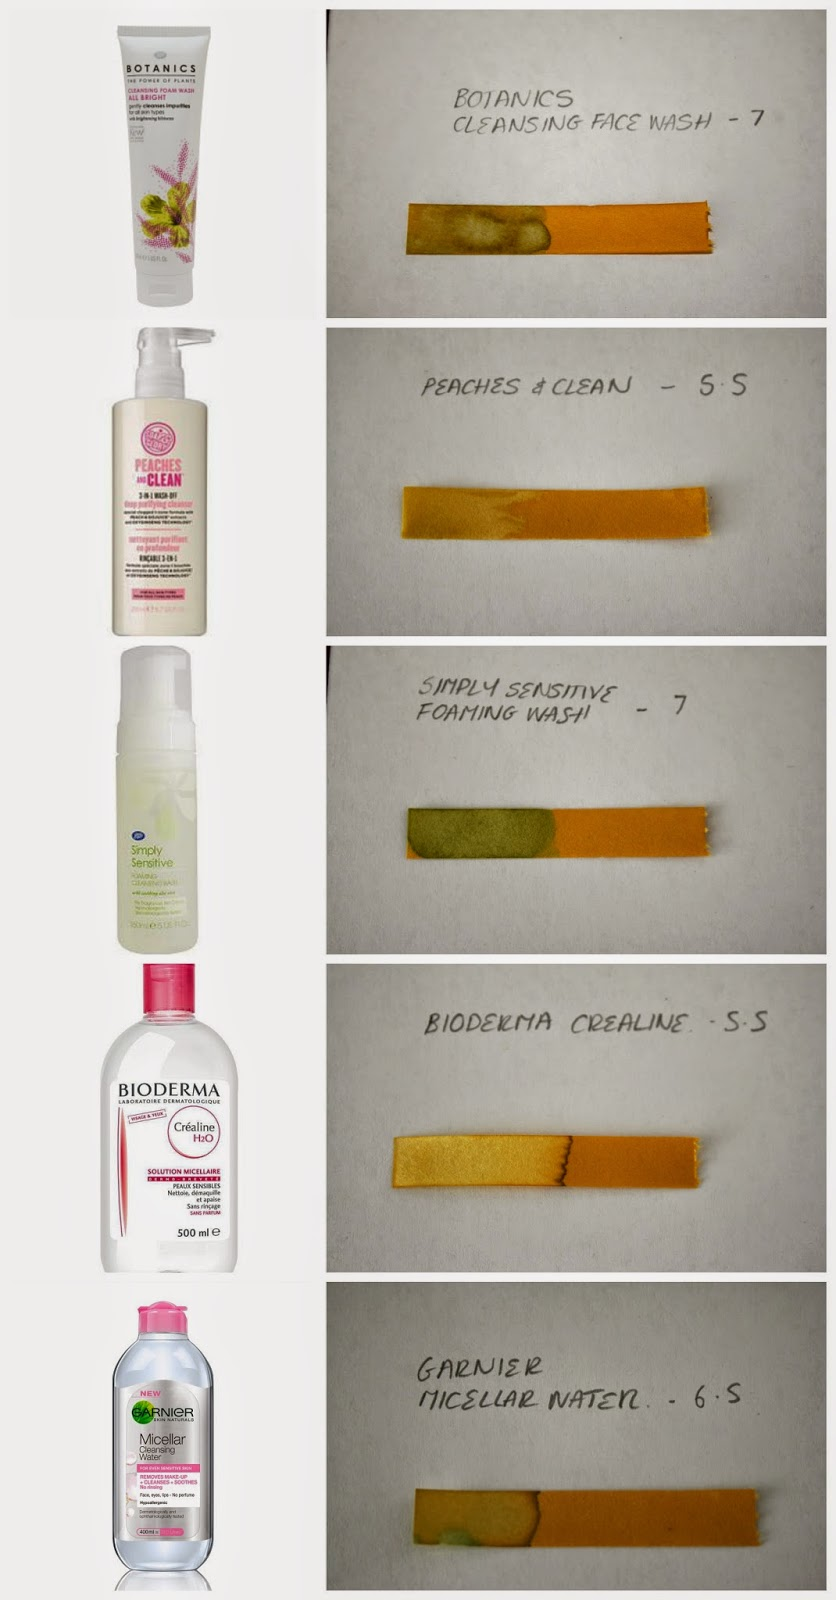 PH-Levels-PH-Values-Effaclar-Duo-Retinol-Reface-Peaches-and-Clean-Bioderma